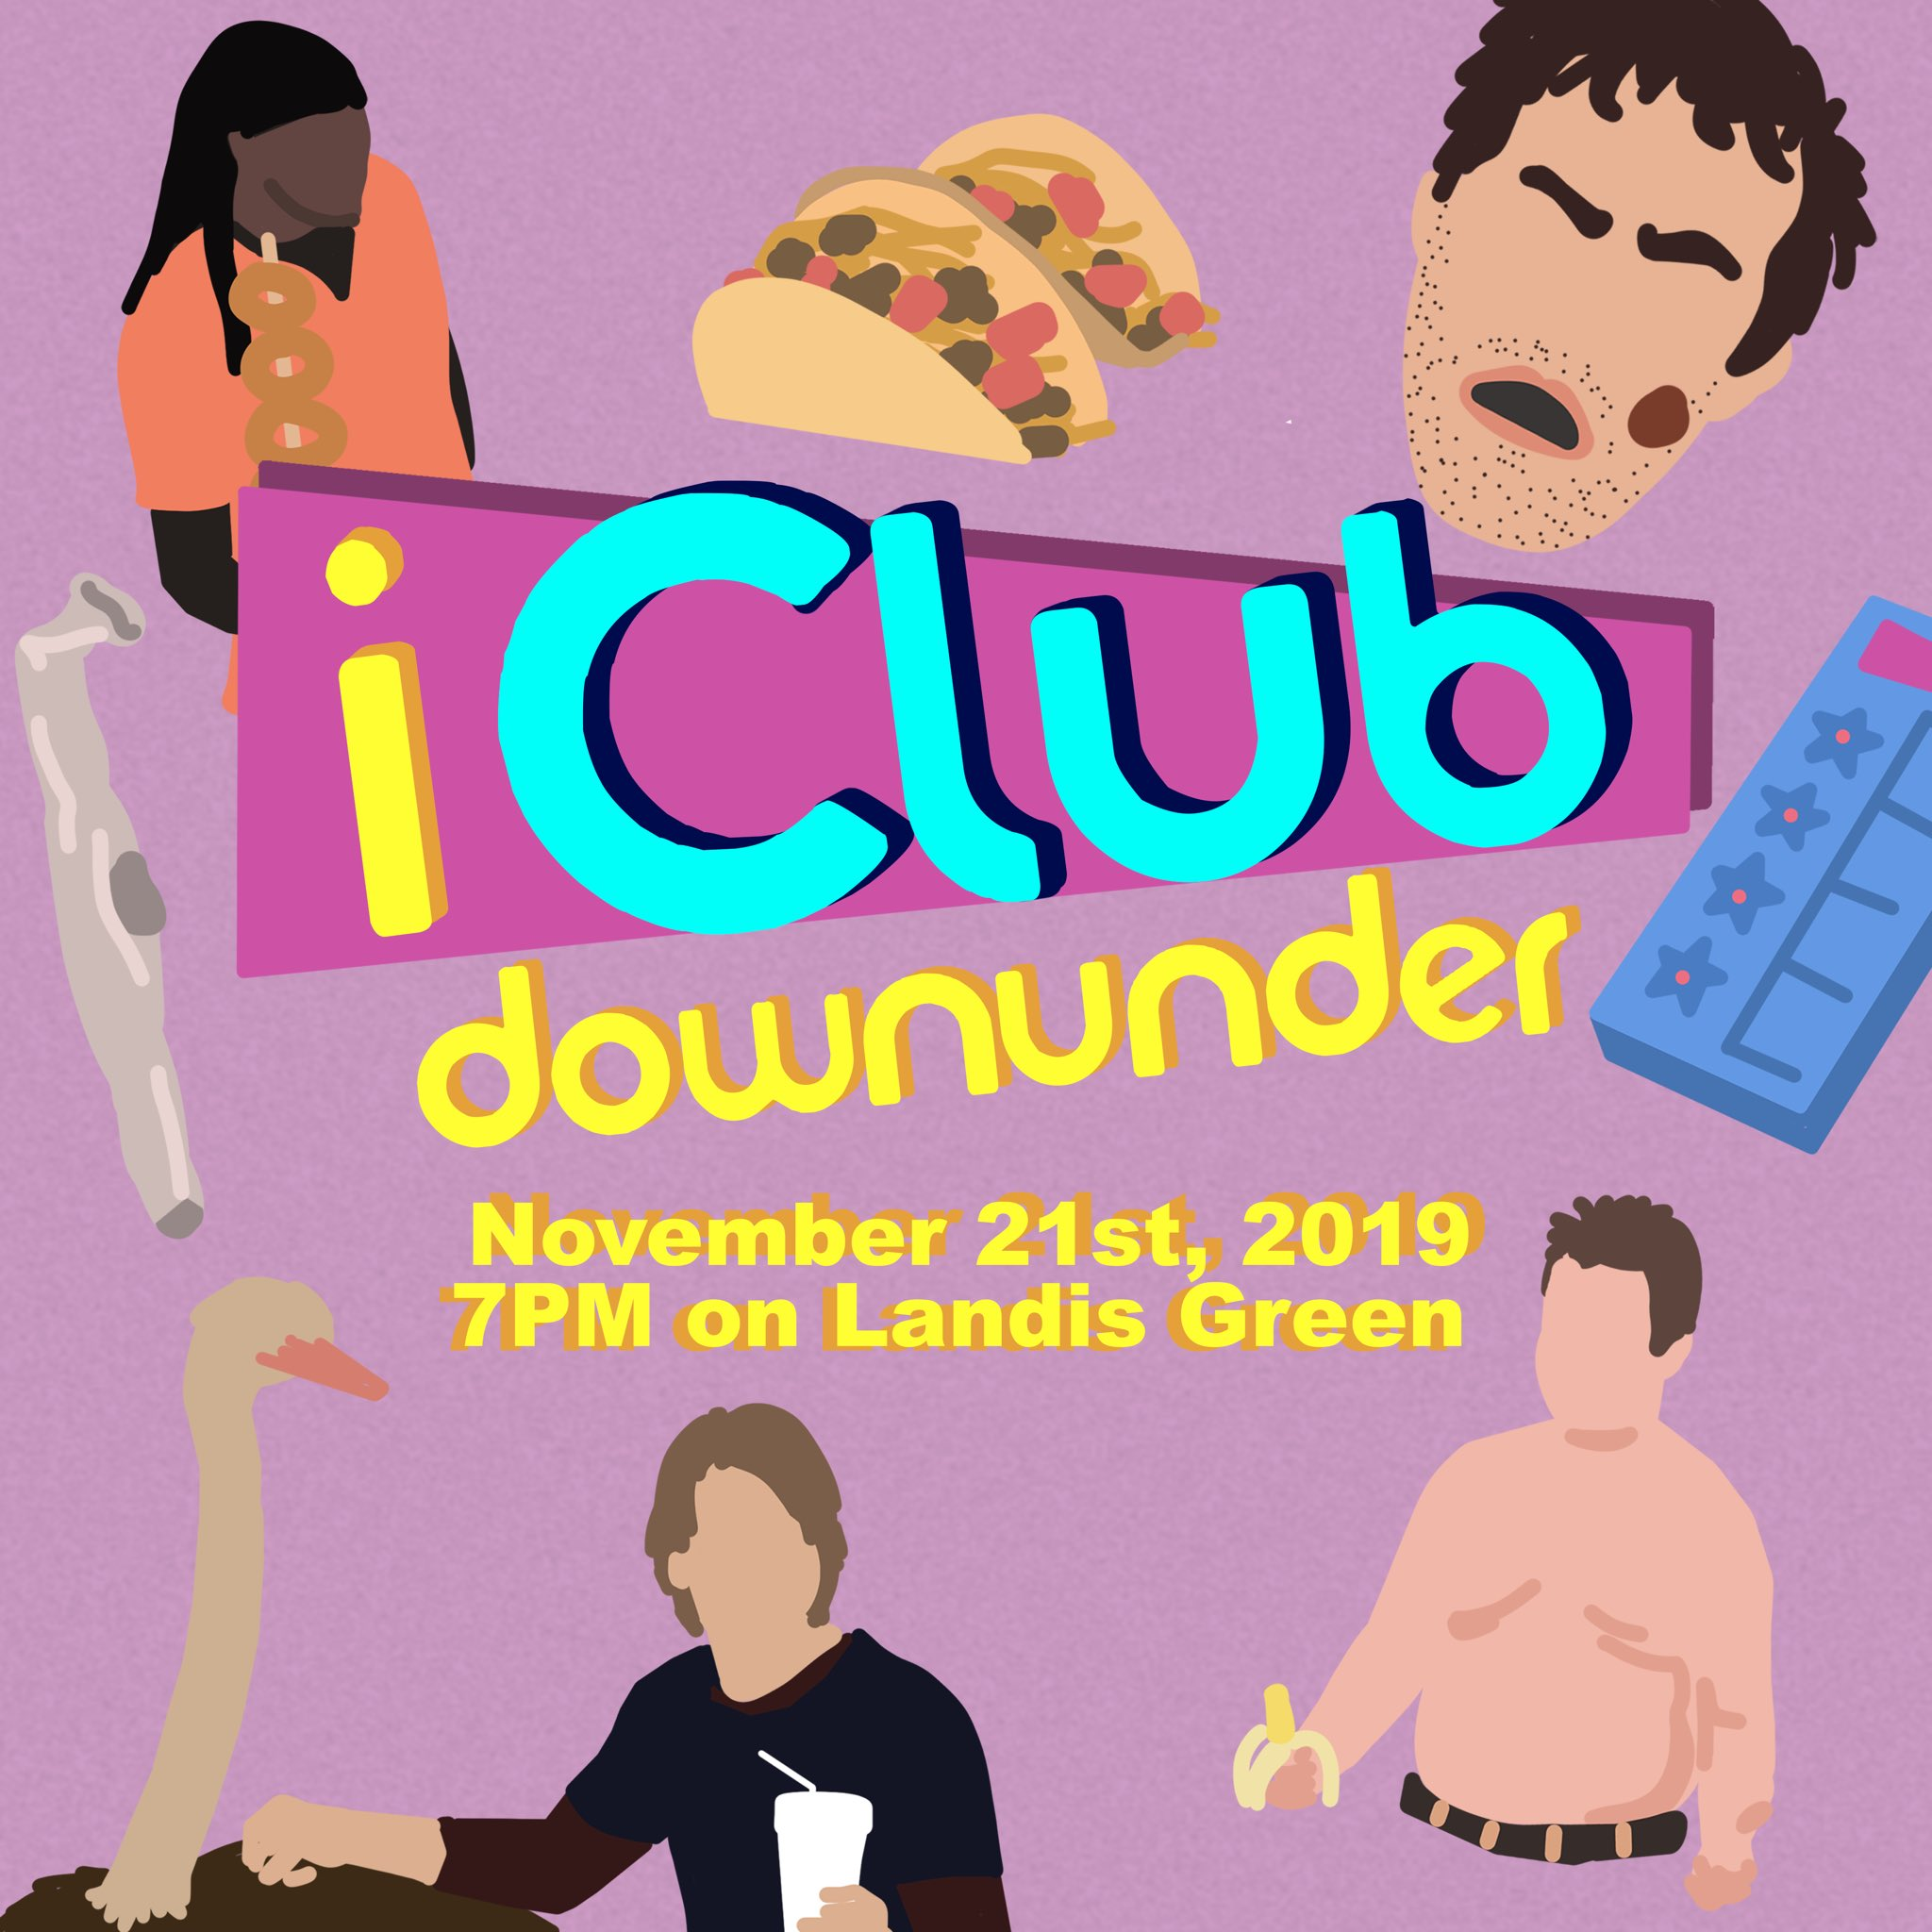 Club Downunder On Twitter And We Re Live In 5 4 3 2 1 Cdu Presents Iclub Downunder Thursday November 21st Landis Green Starts 7 Pm Ends 11 Pm Join Us For An Icarly Themed